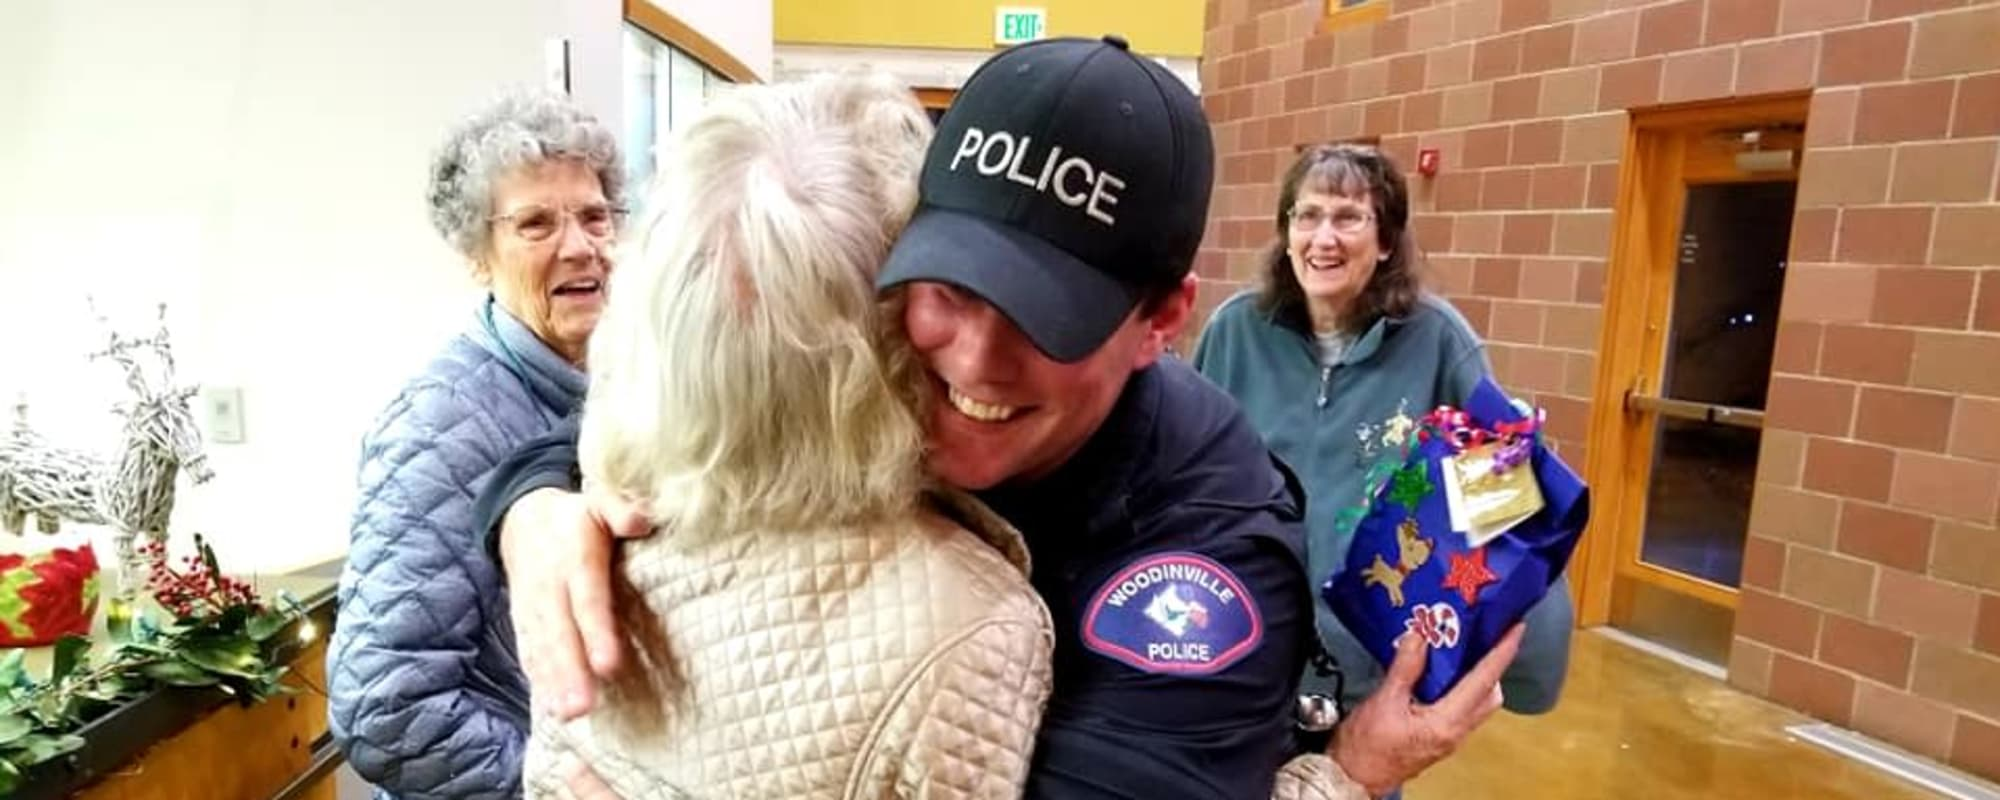 Police officer hugging a senior at The Creekside in Woodinville, Washington